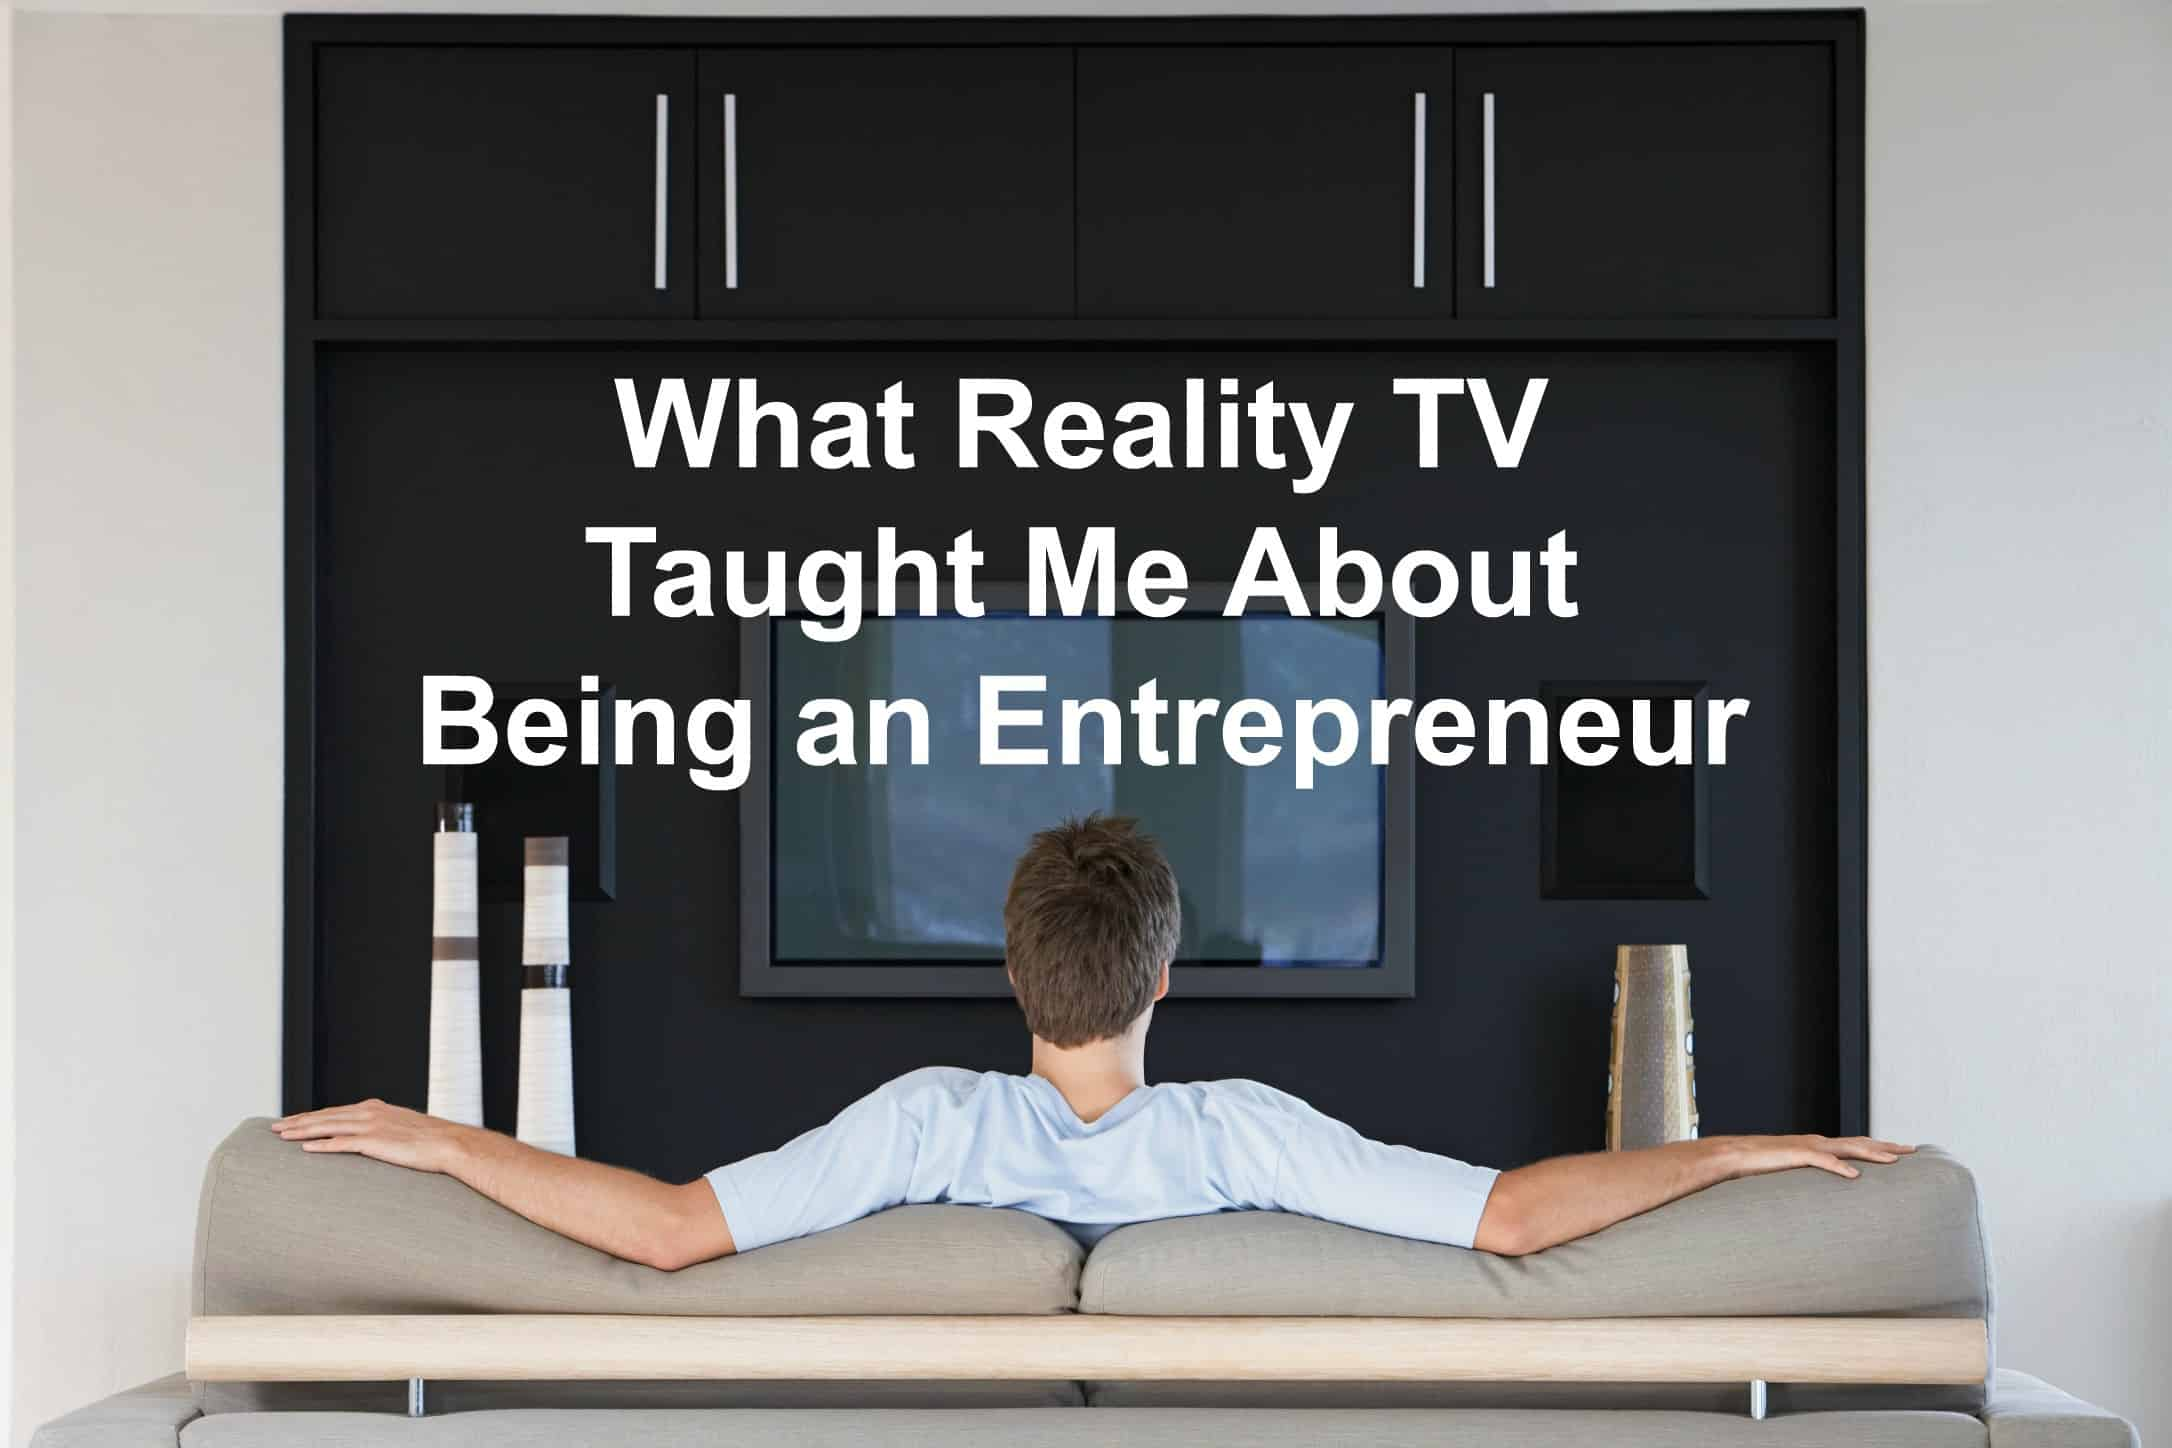 TV and entrepreneurship can go together